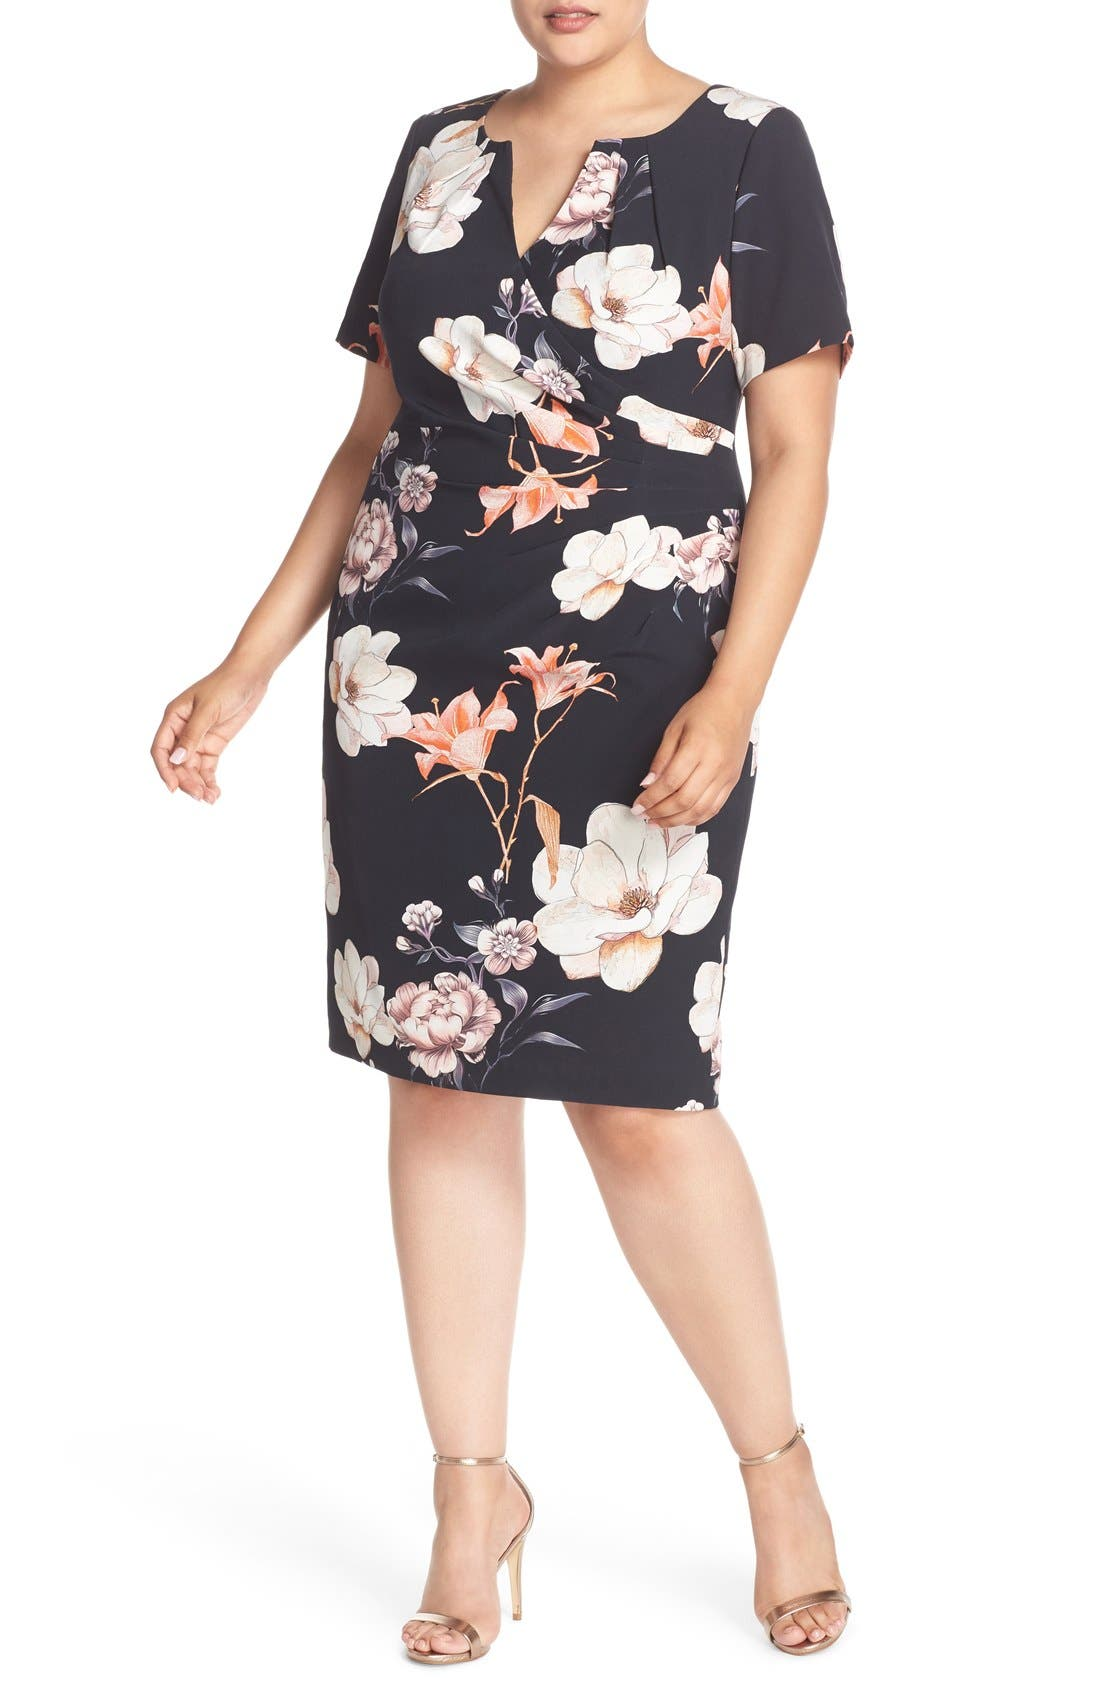 Adrianna Papell Side Pleat Floral Print Sheath Dress (Plus Size)